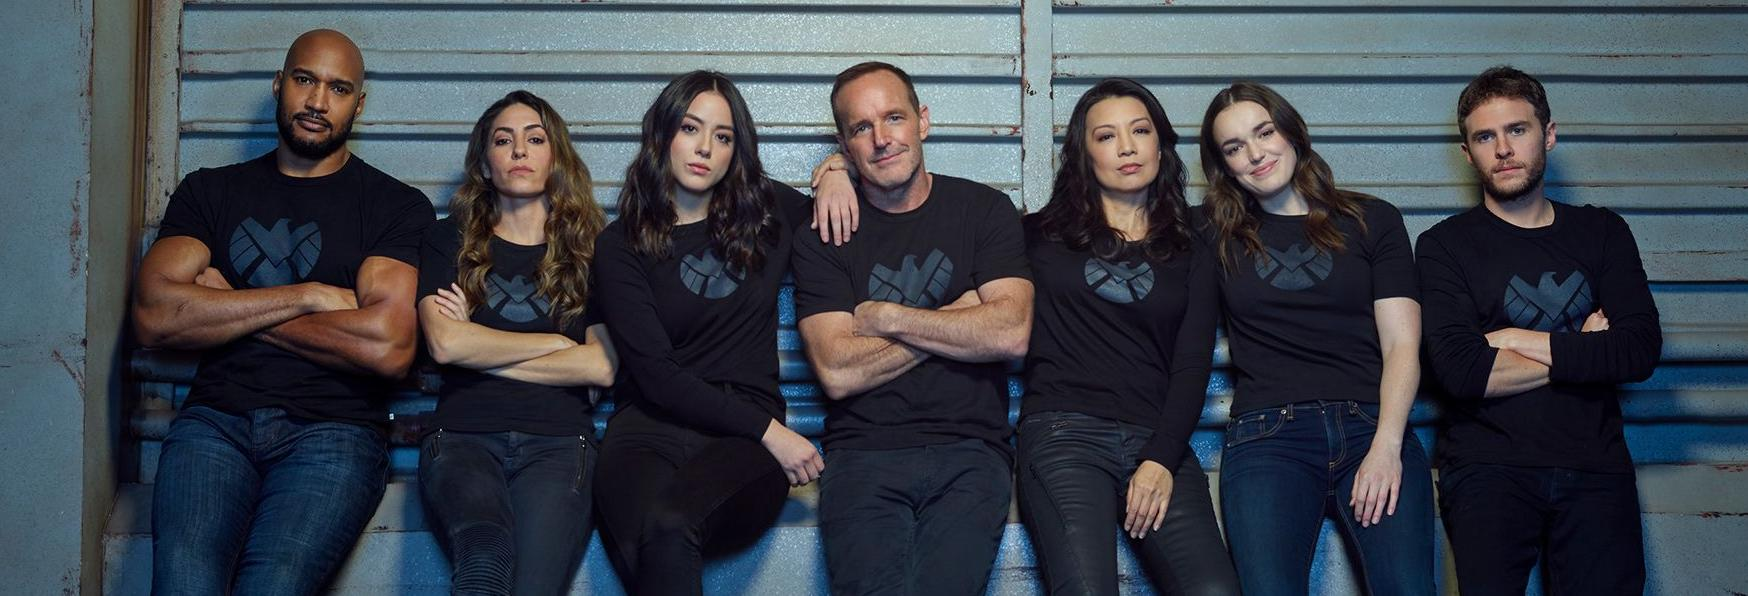 Agents of S.H.I.E.L.D. 6: il Cast parla del Finale di Stagione